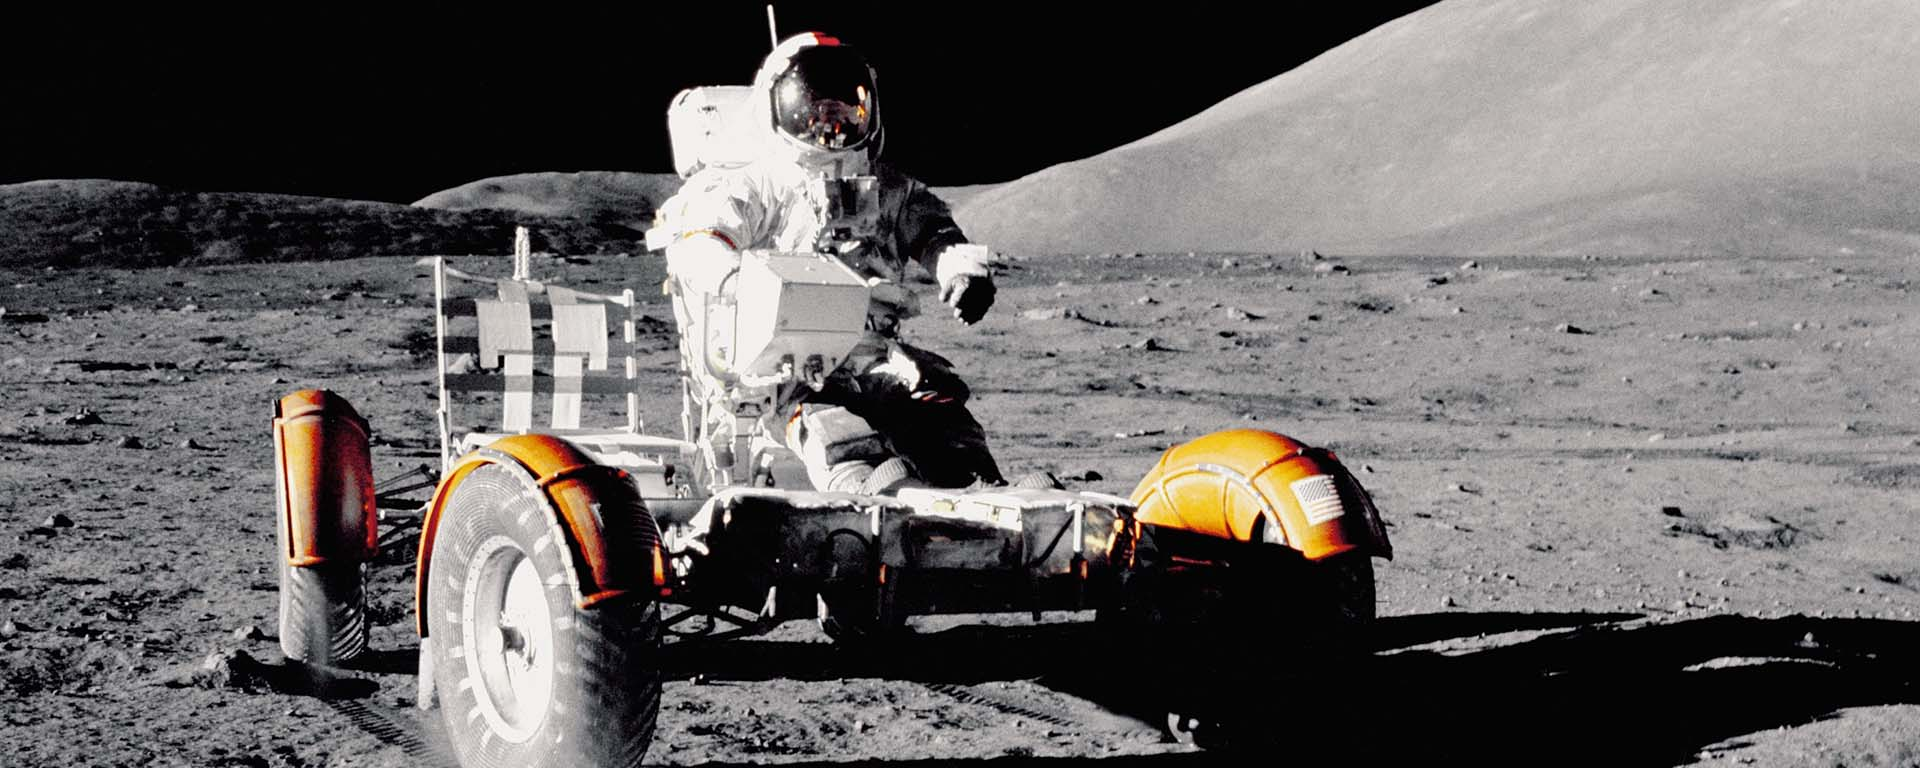 Astronaut riding a vehicle in space